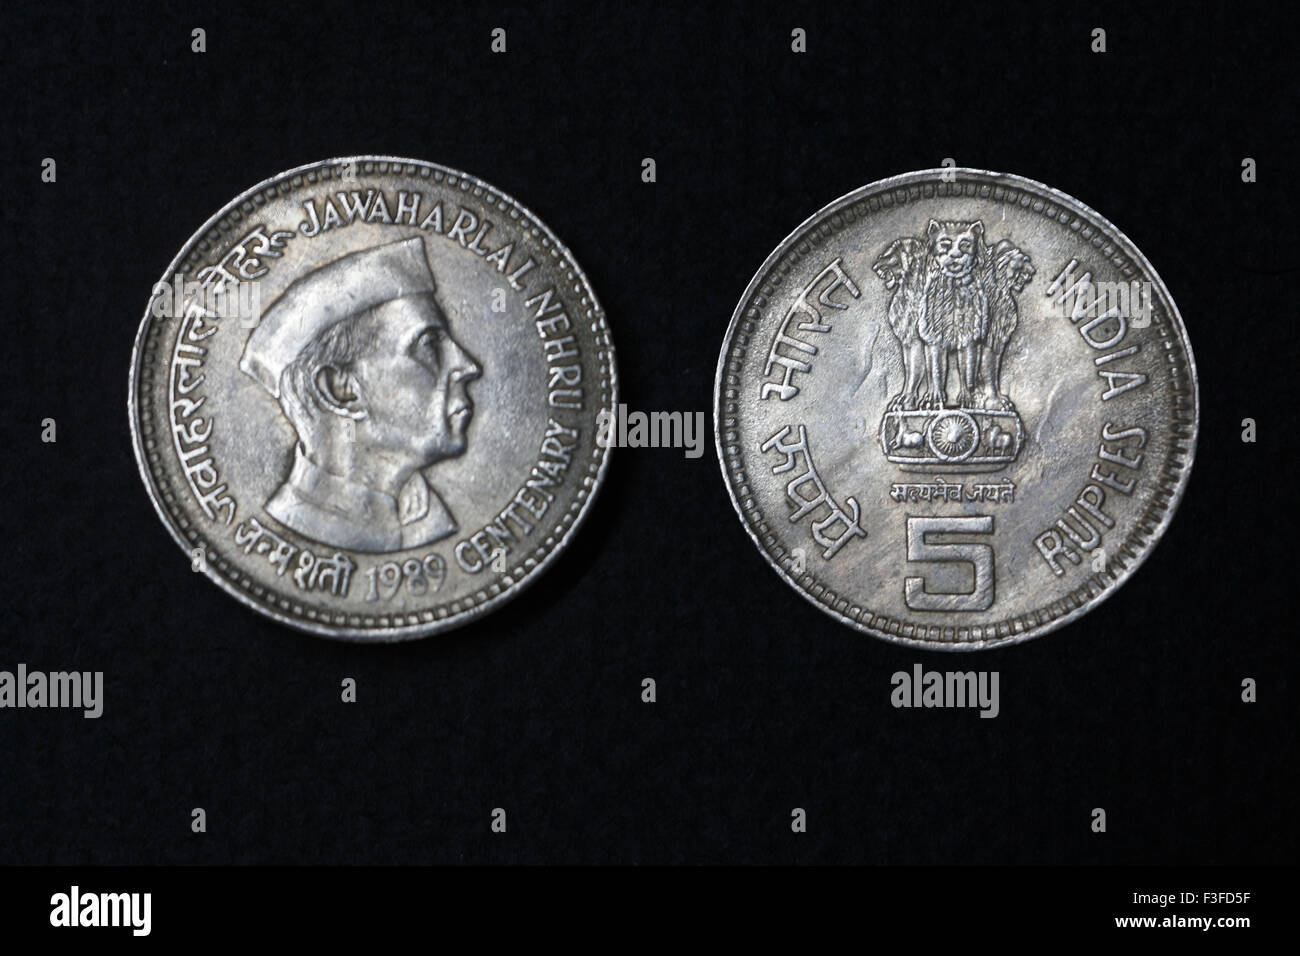 Coinage ; India coinage ; Jawaharlal Nehru centenary 1989 with five rupee coin - Stock Image